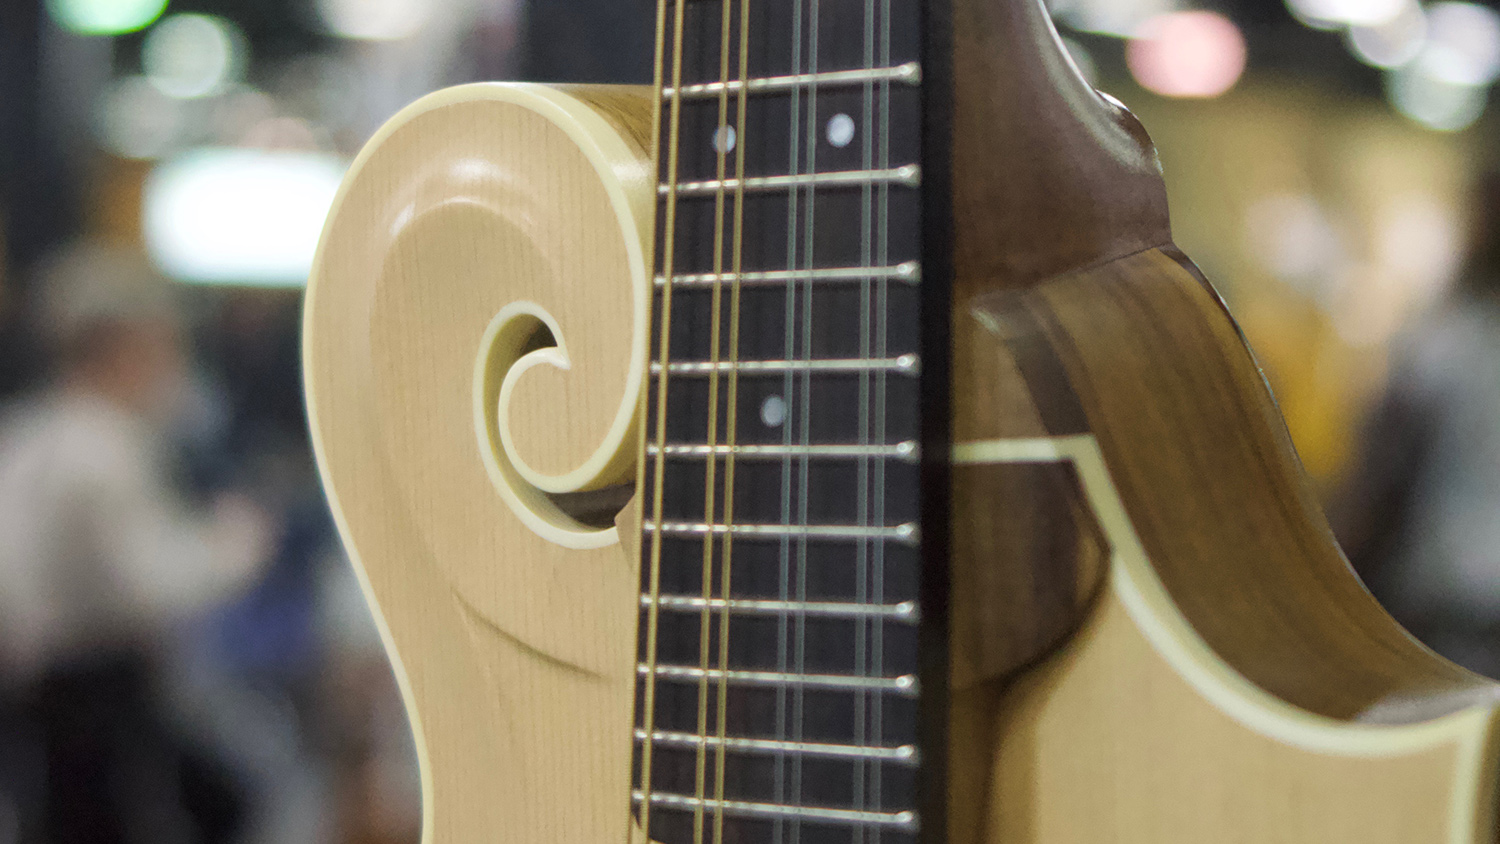 Our 7 Favorite Finds at NAMM Show 2018 - Behind the Setlist